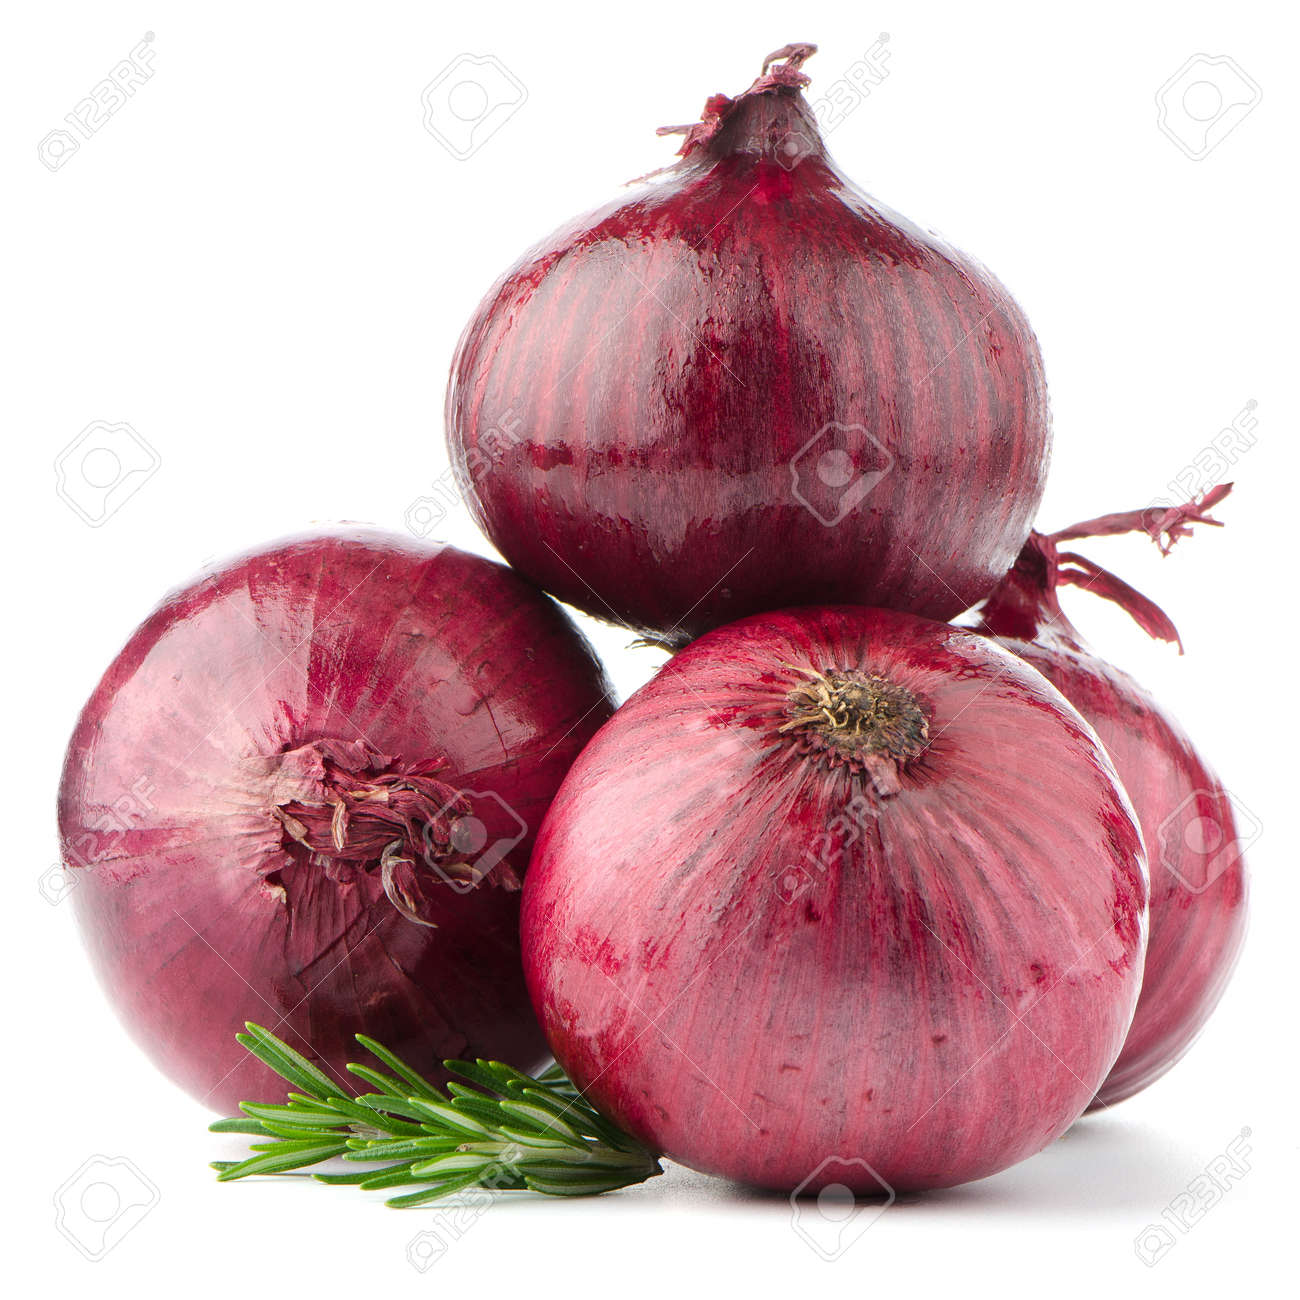 Red onions isolated on white background - 20823294